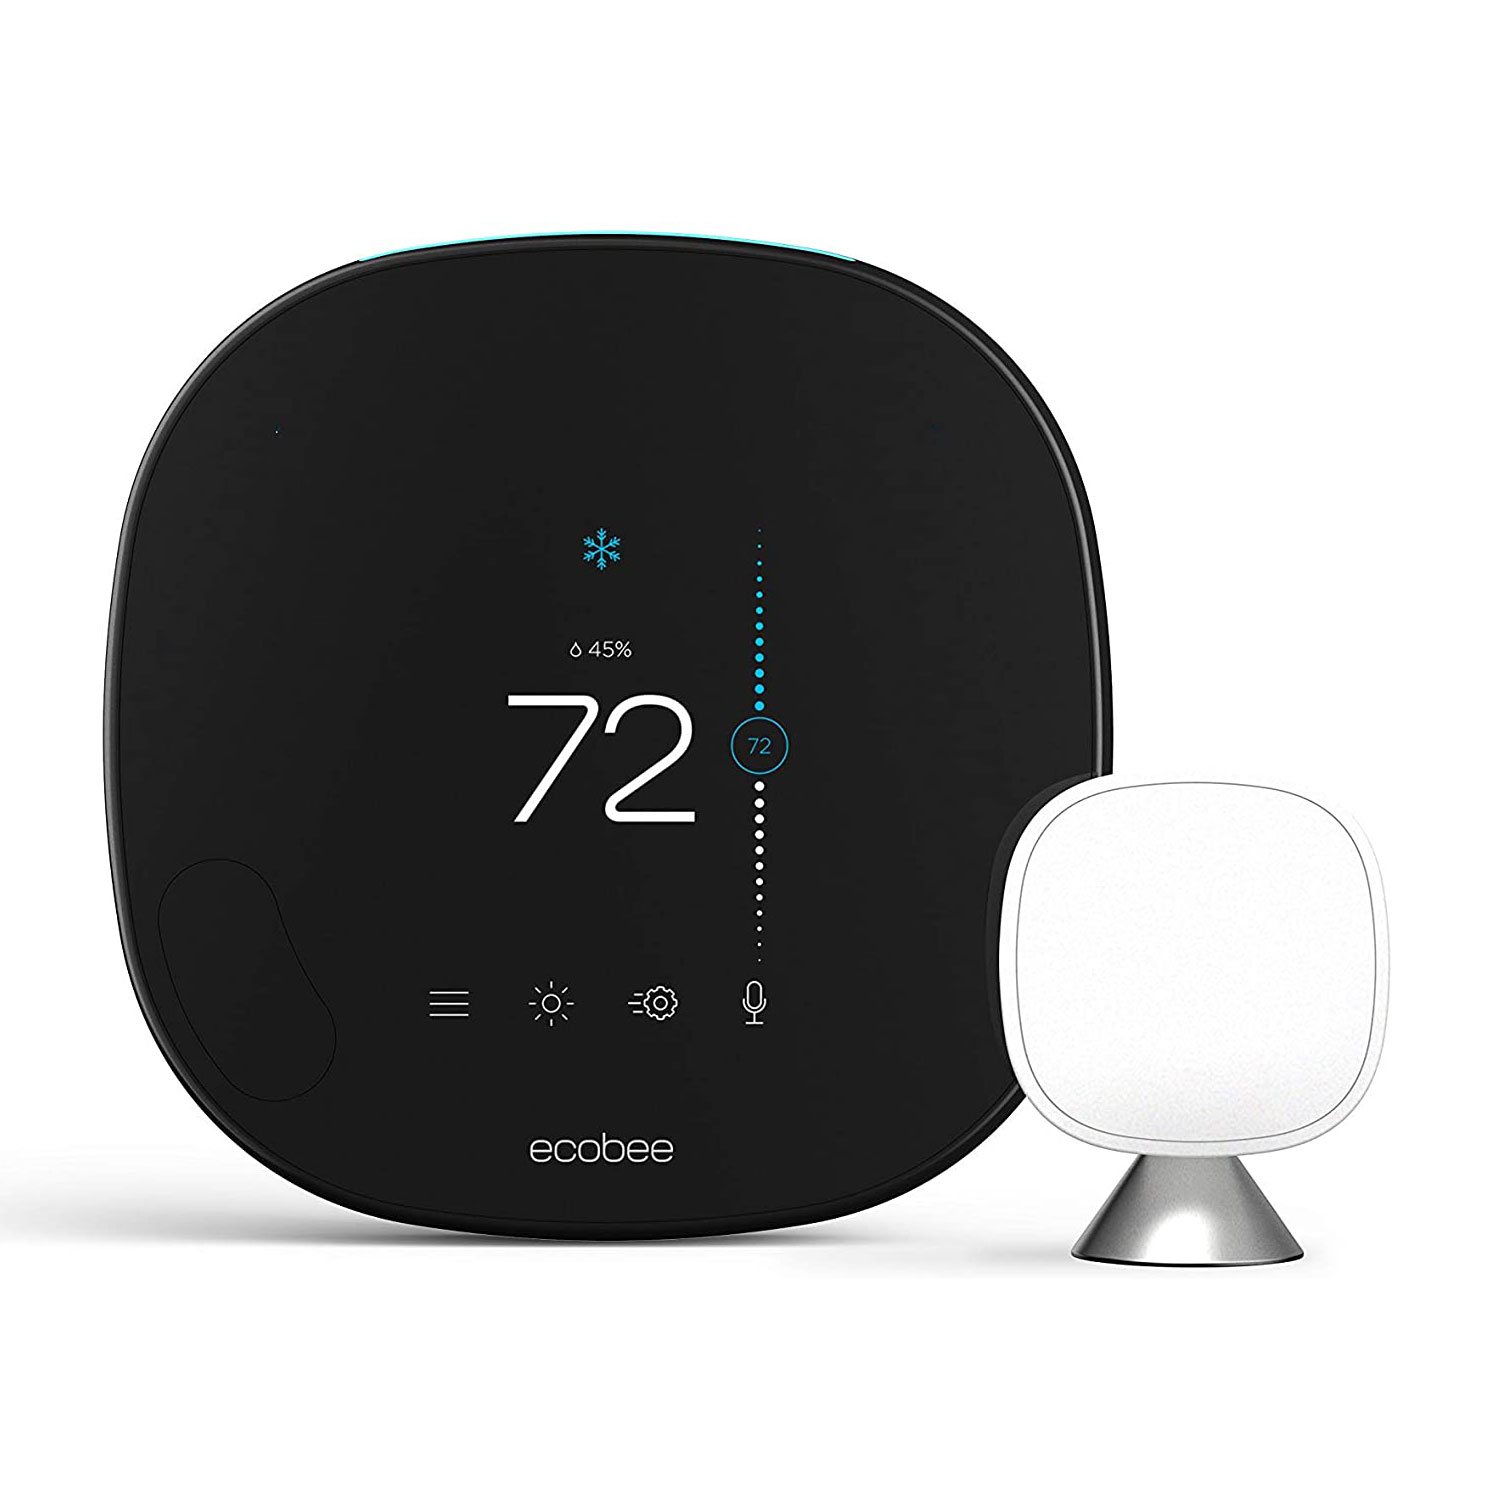 ecobee smart thermostat voice control smart sensor alexa